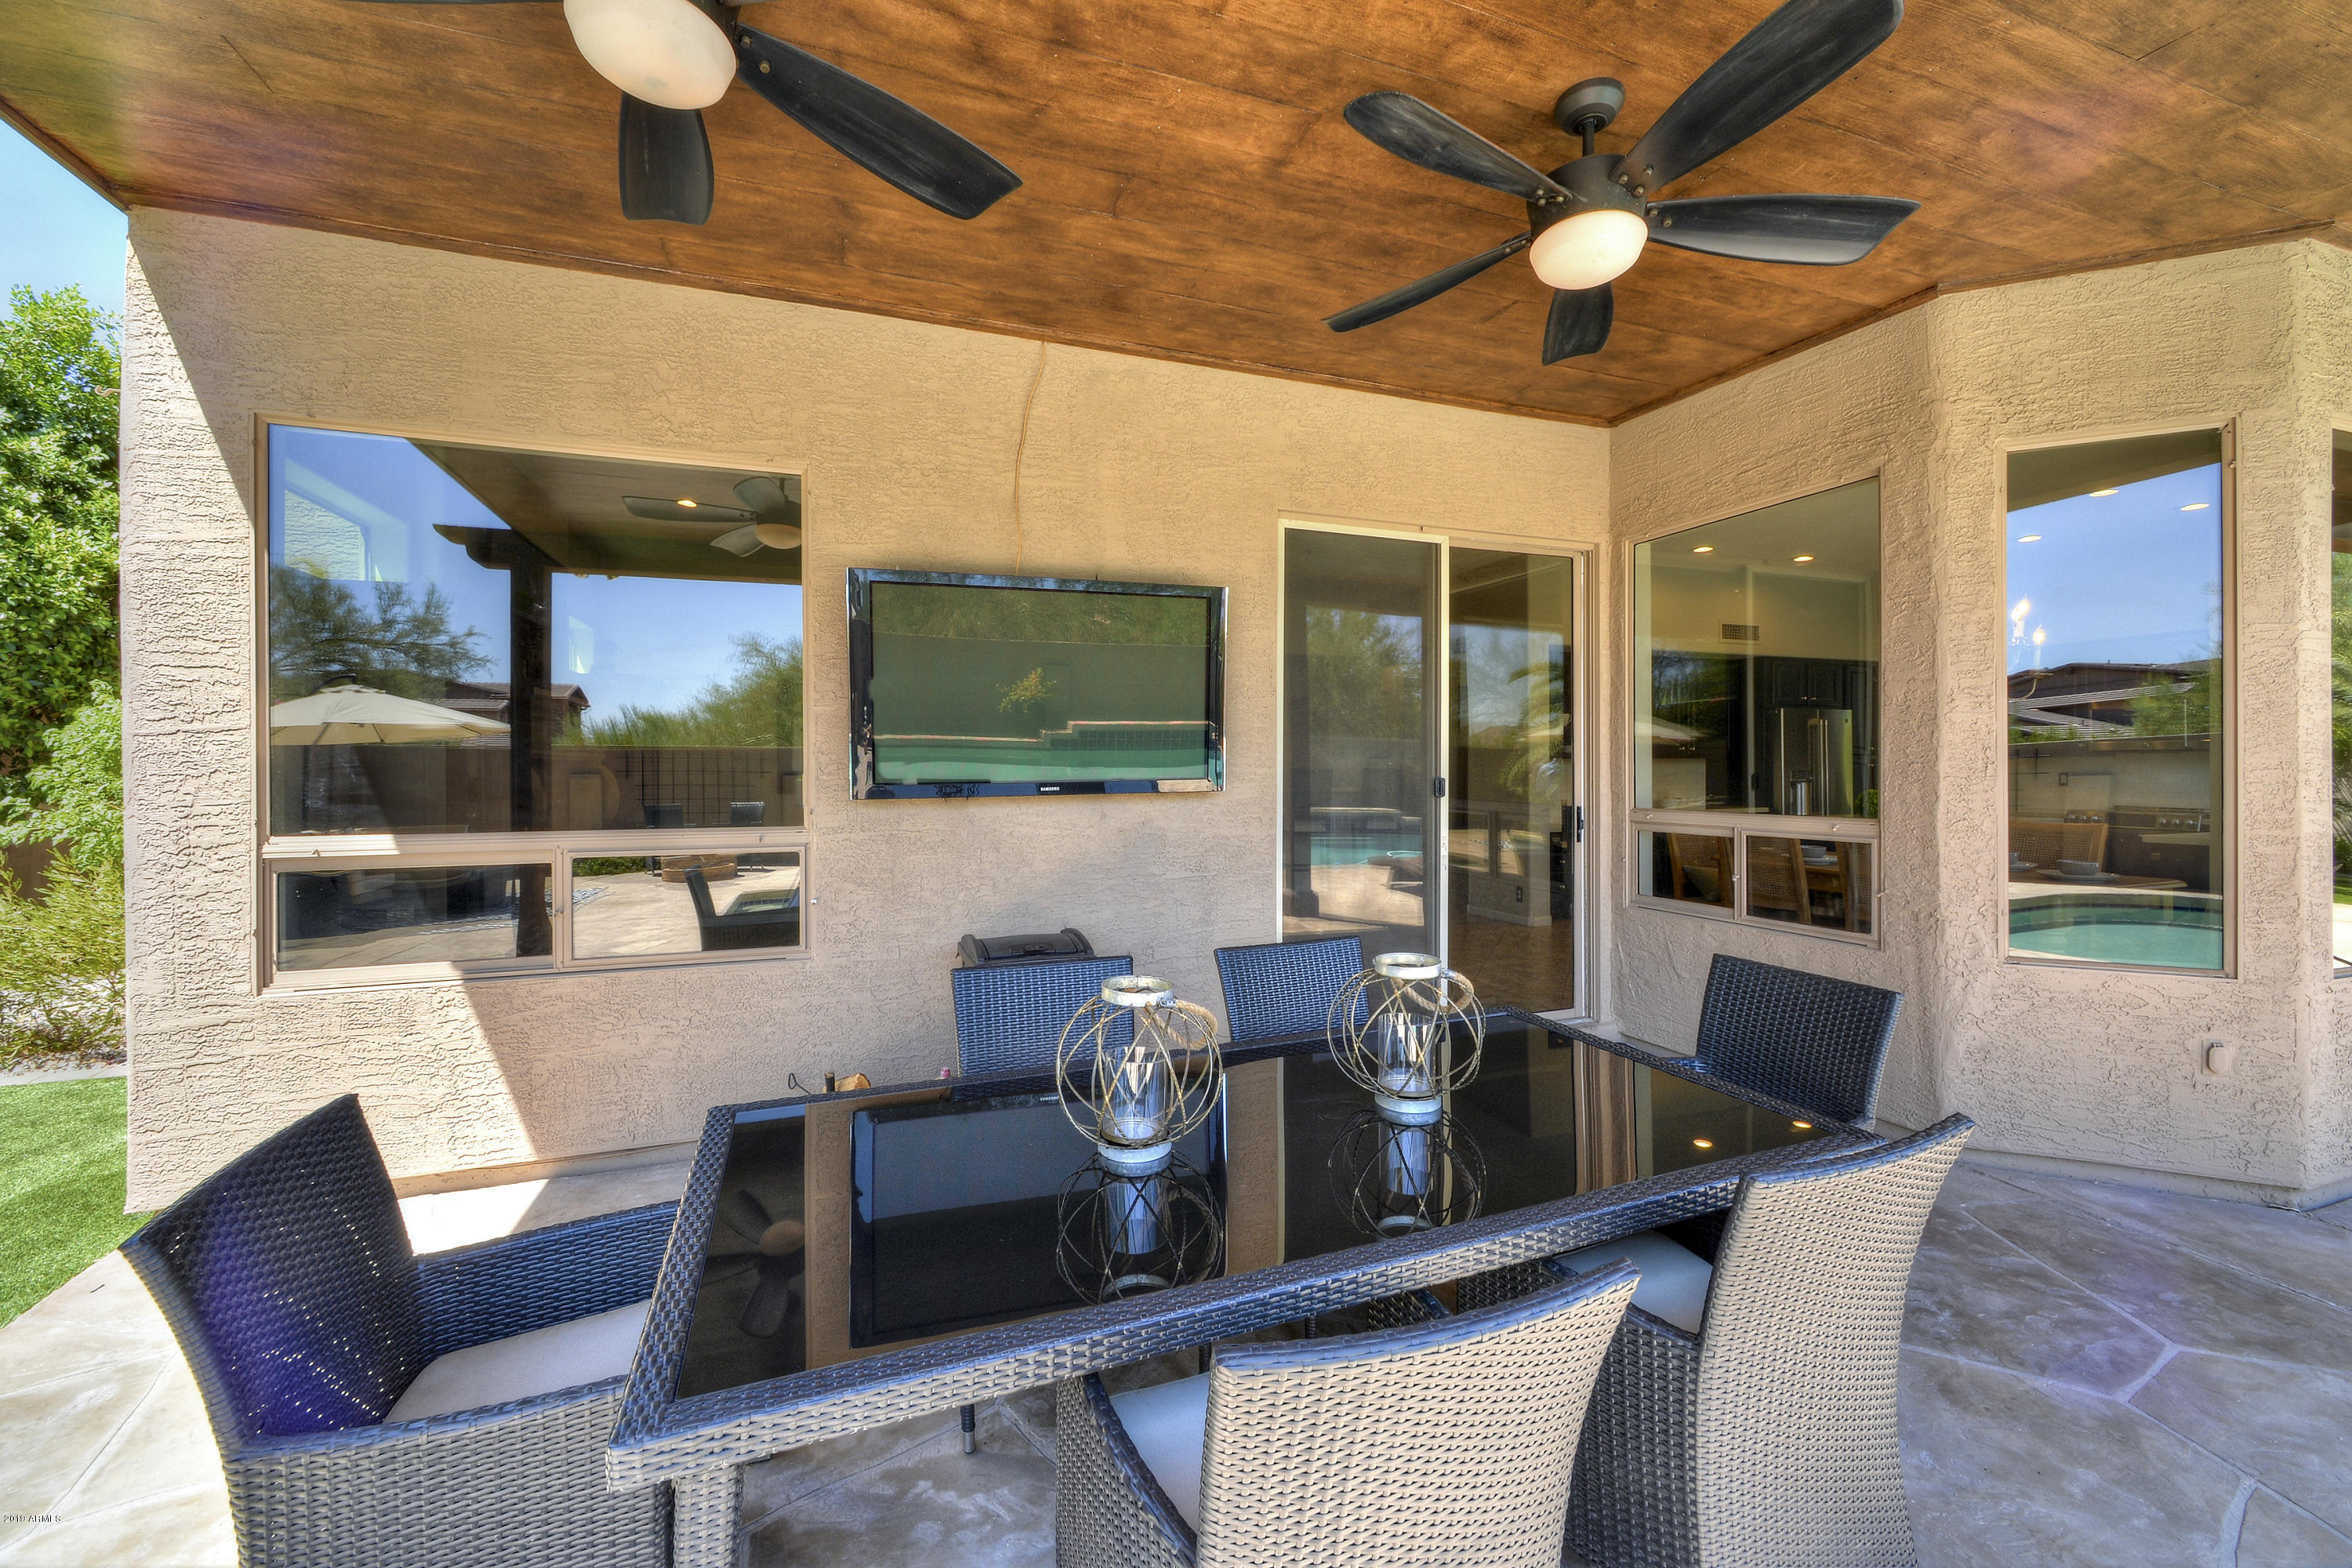 9553 NITTANY Drive, Scottsdale, Arizona 85255, 5 Bedrooms Bedrooms, ,3 BathroomsBathrooms,Residential,For Sale,NITTANY,6137570